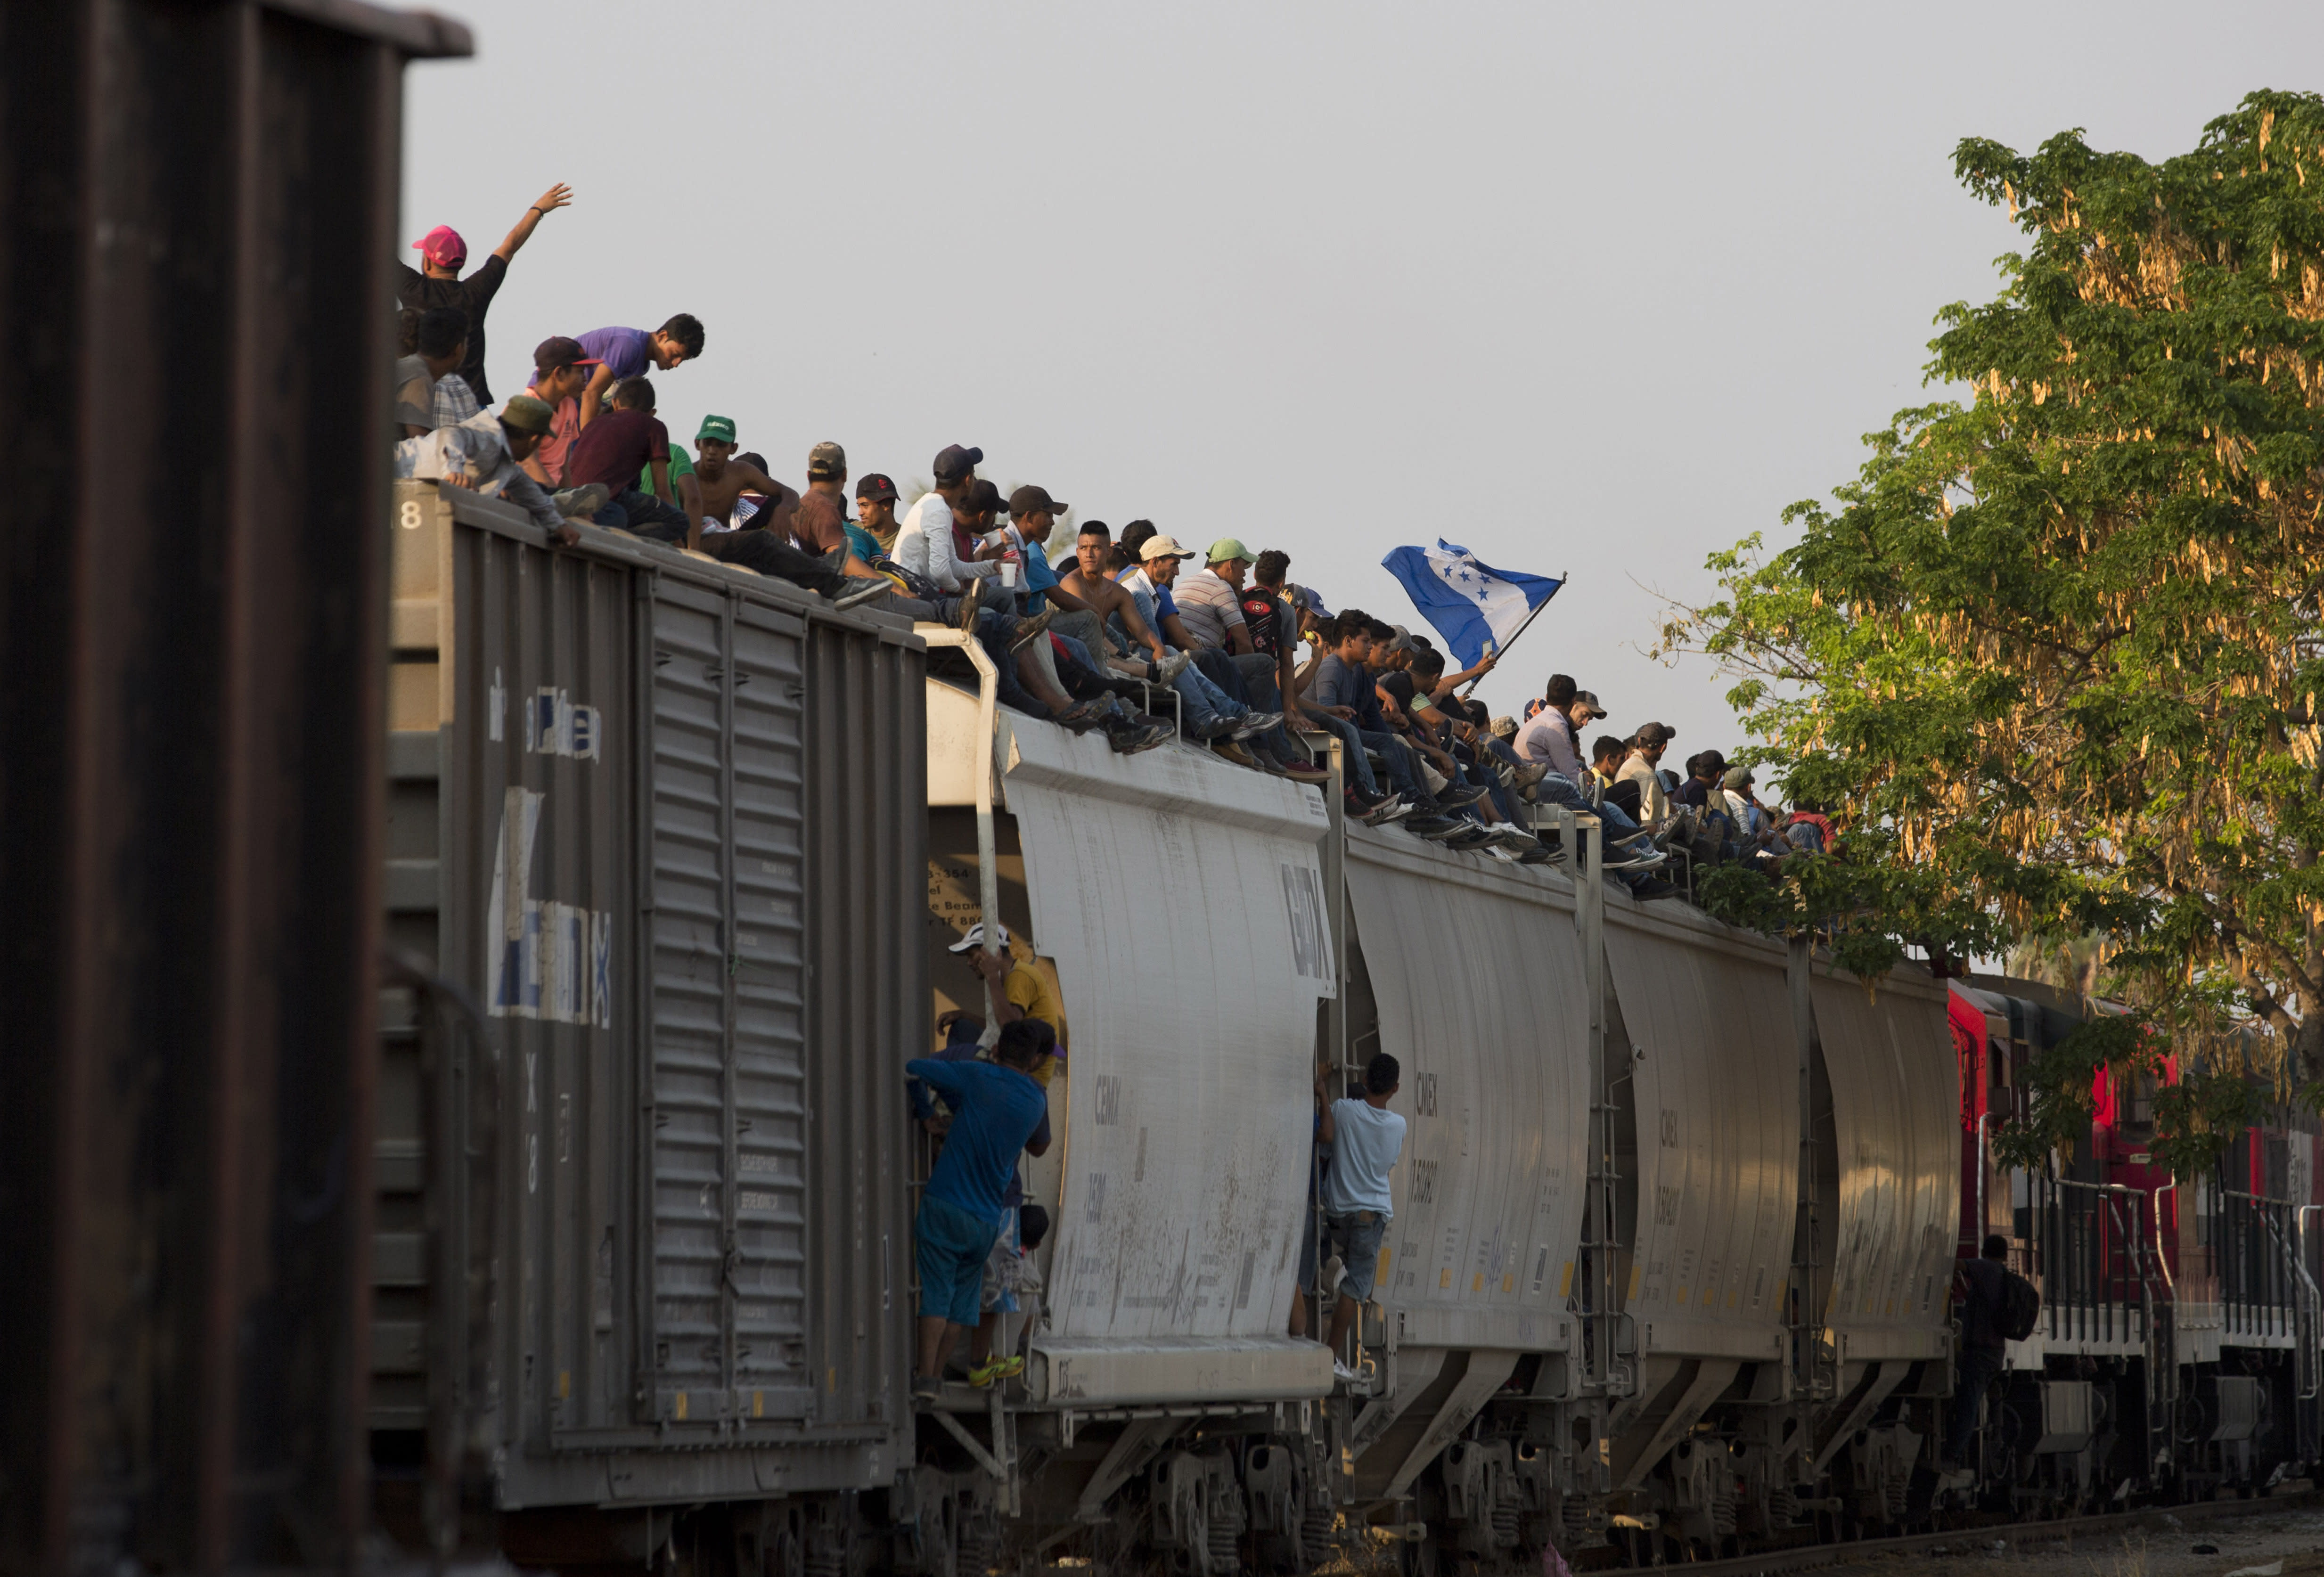 FILE - In this April 23, 2019 file photo, Central American migrants ride atop a freight train during their journey toward the U.S.-Mexico border, in Ixtepec, Oaxaca State, Mexico. Mexico said in Friday, Sept. 5, that it has complied with a 90-day deadline from the U.S. to reduce the flow of migrants through its territory, but activists say Mexico's crackdown has only forced migrants into greater desperation and more illicit, dangerous routes. (AP Photo/Moises Castillo, File)